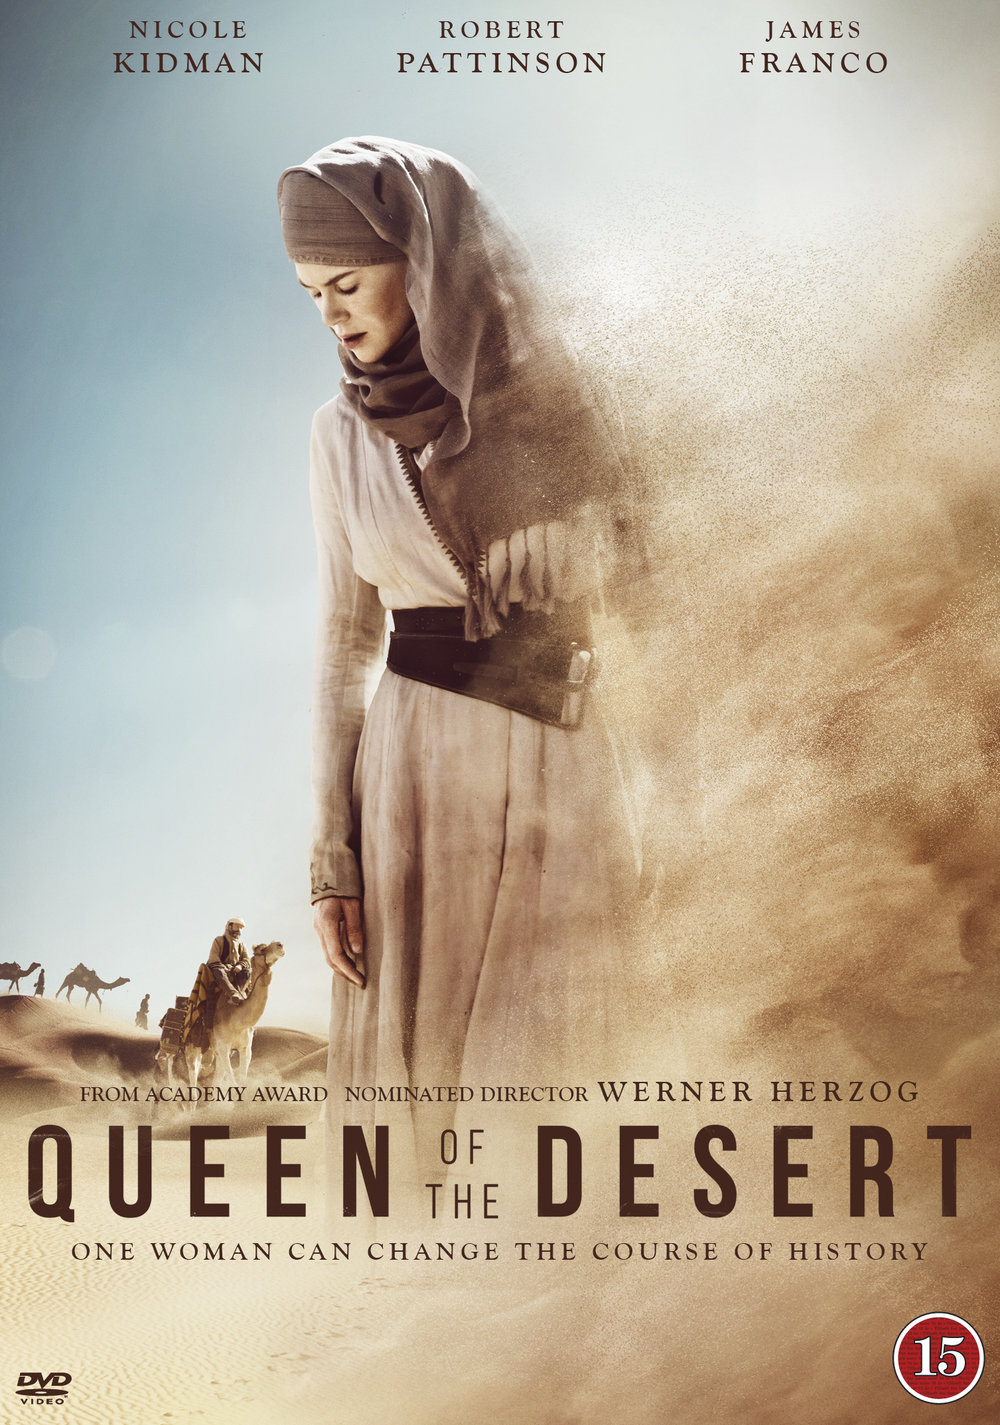 Queen of the desert.jpg